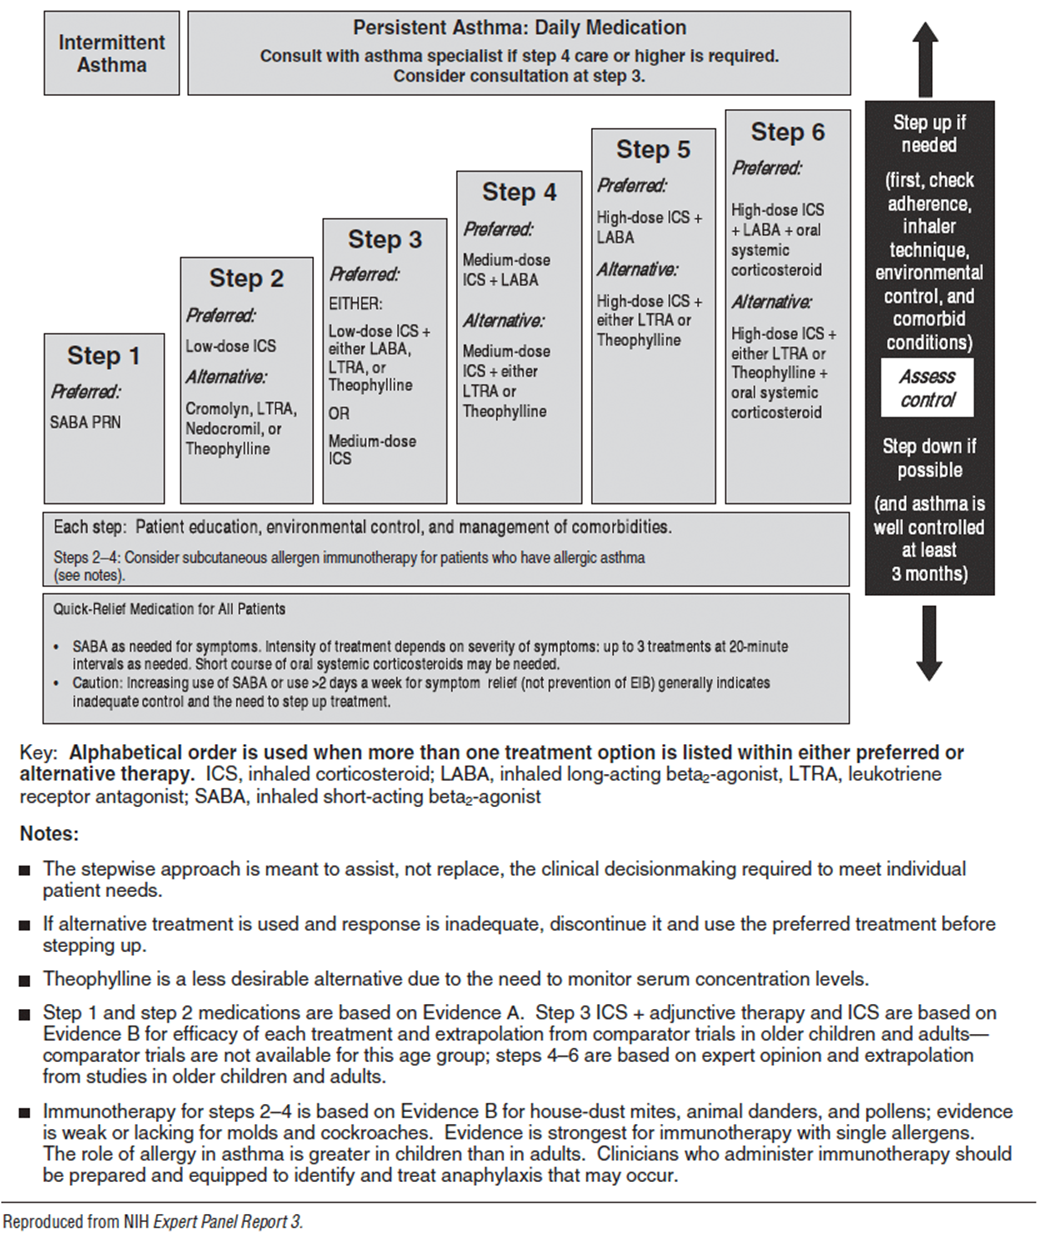 Estrace 0.5 mg tablet.doc - Figure 28 3 Stepwise Approach For Managing Asthma In Children 5 11 Years Of Age Treatment